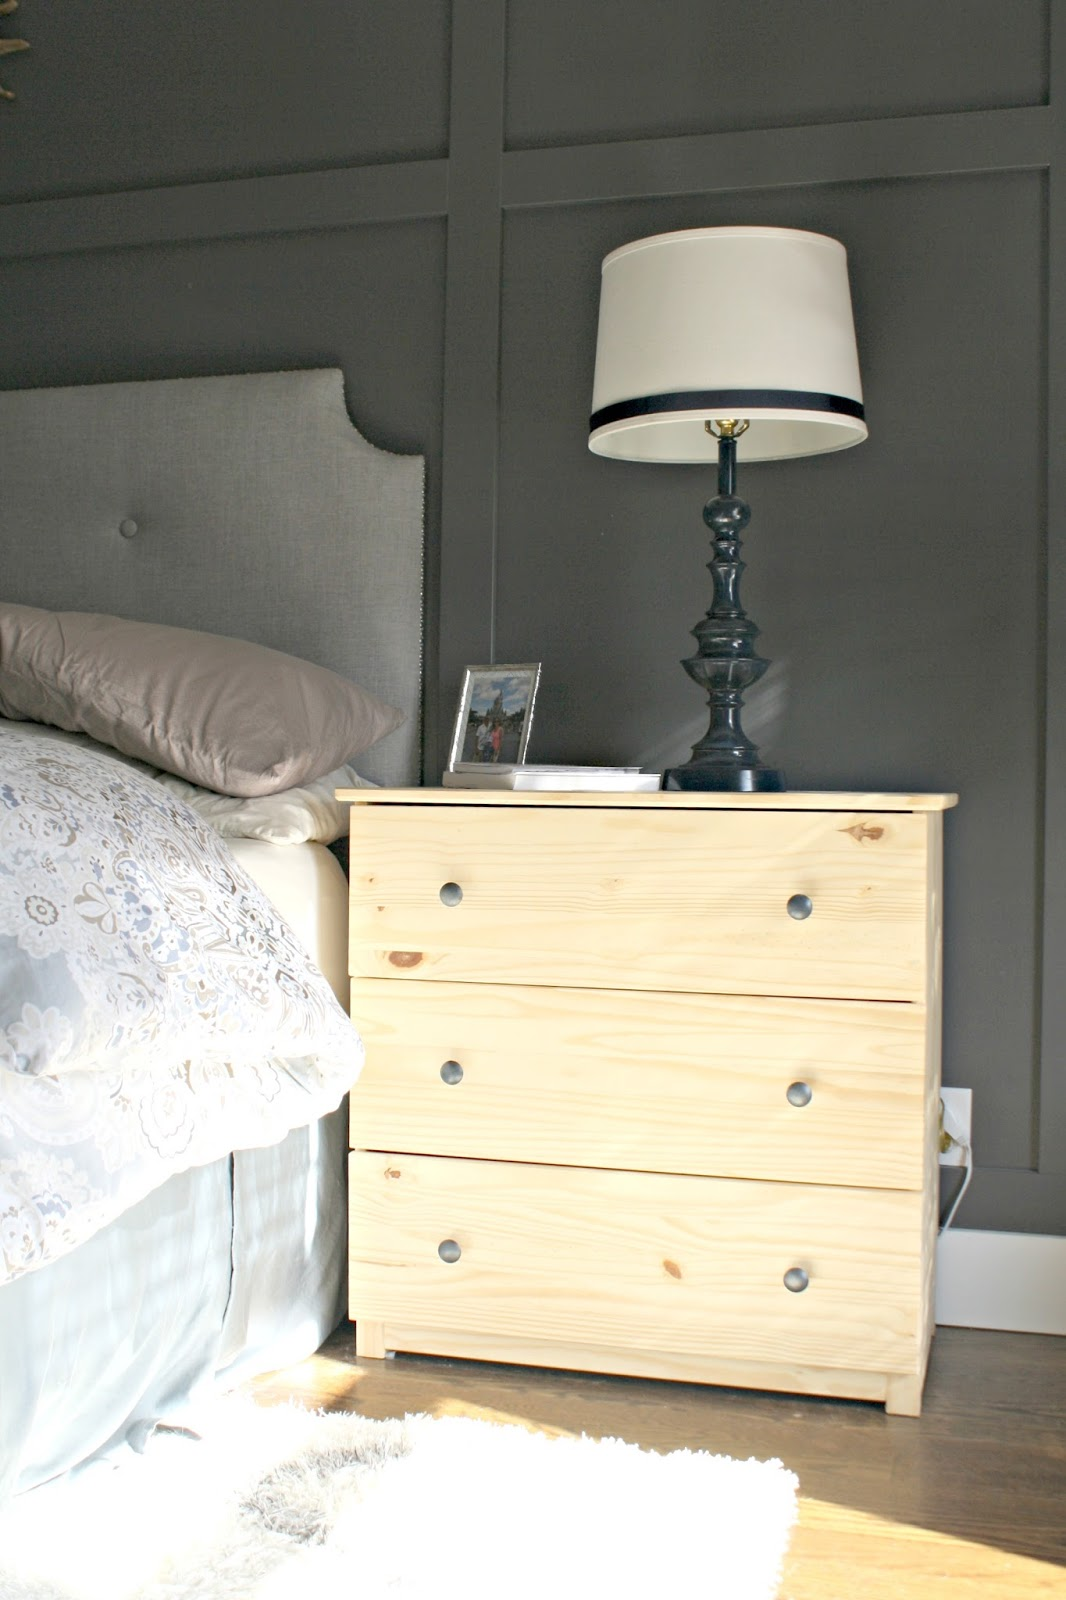 IKEA Dresser Hacks as Nightstands from Thrifty Decor Chick